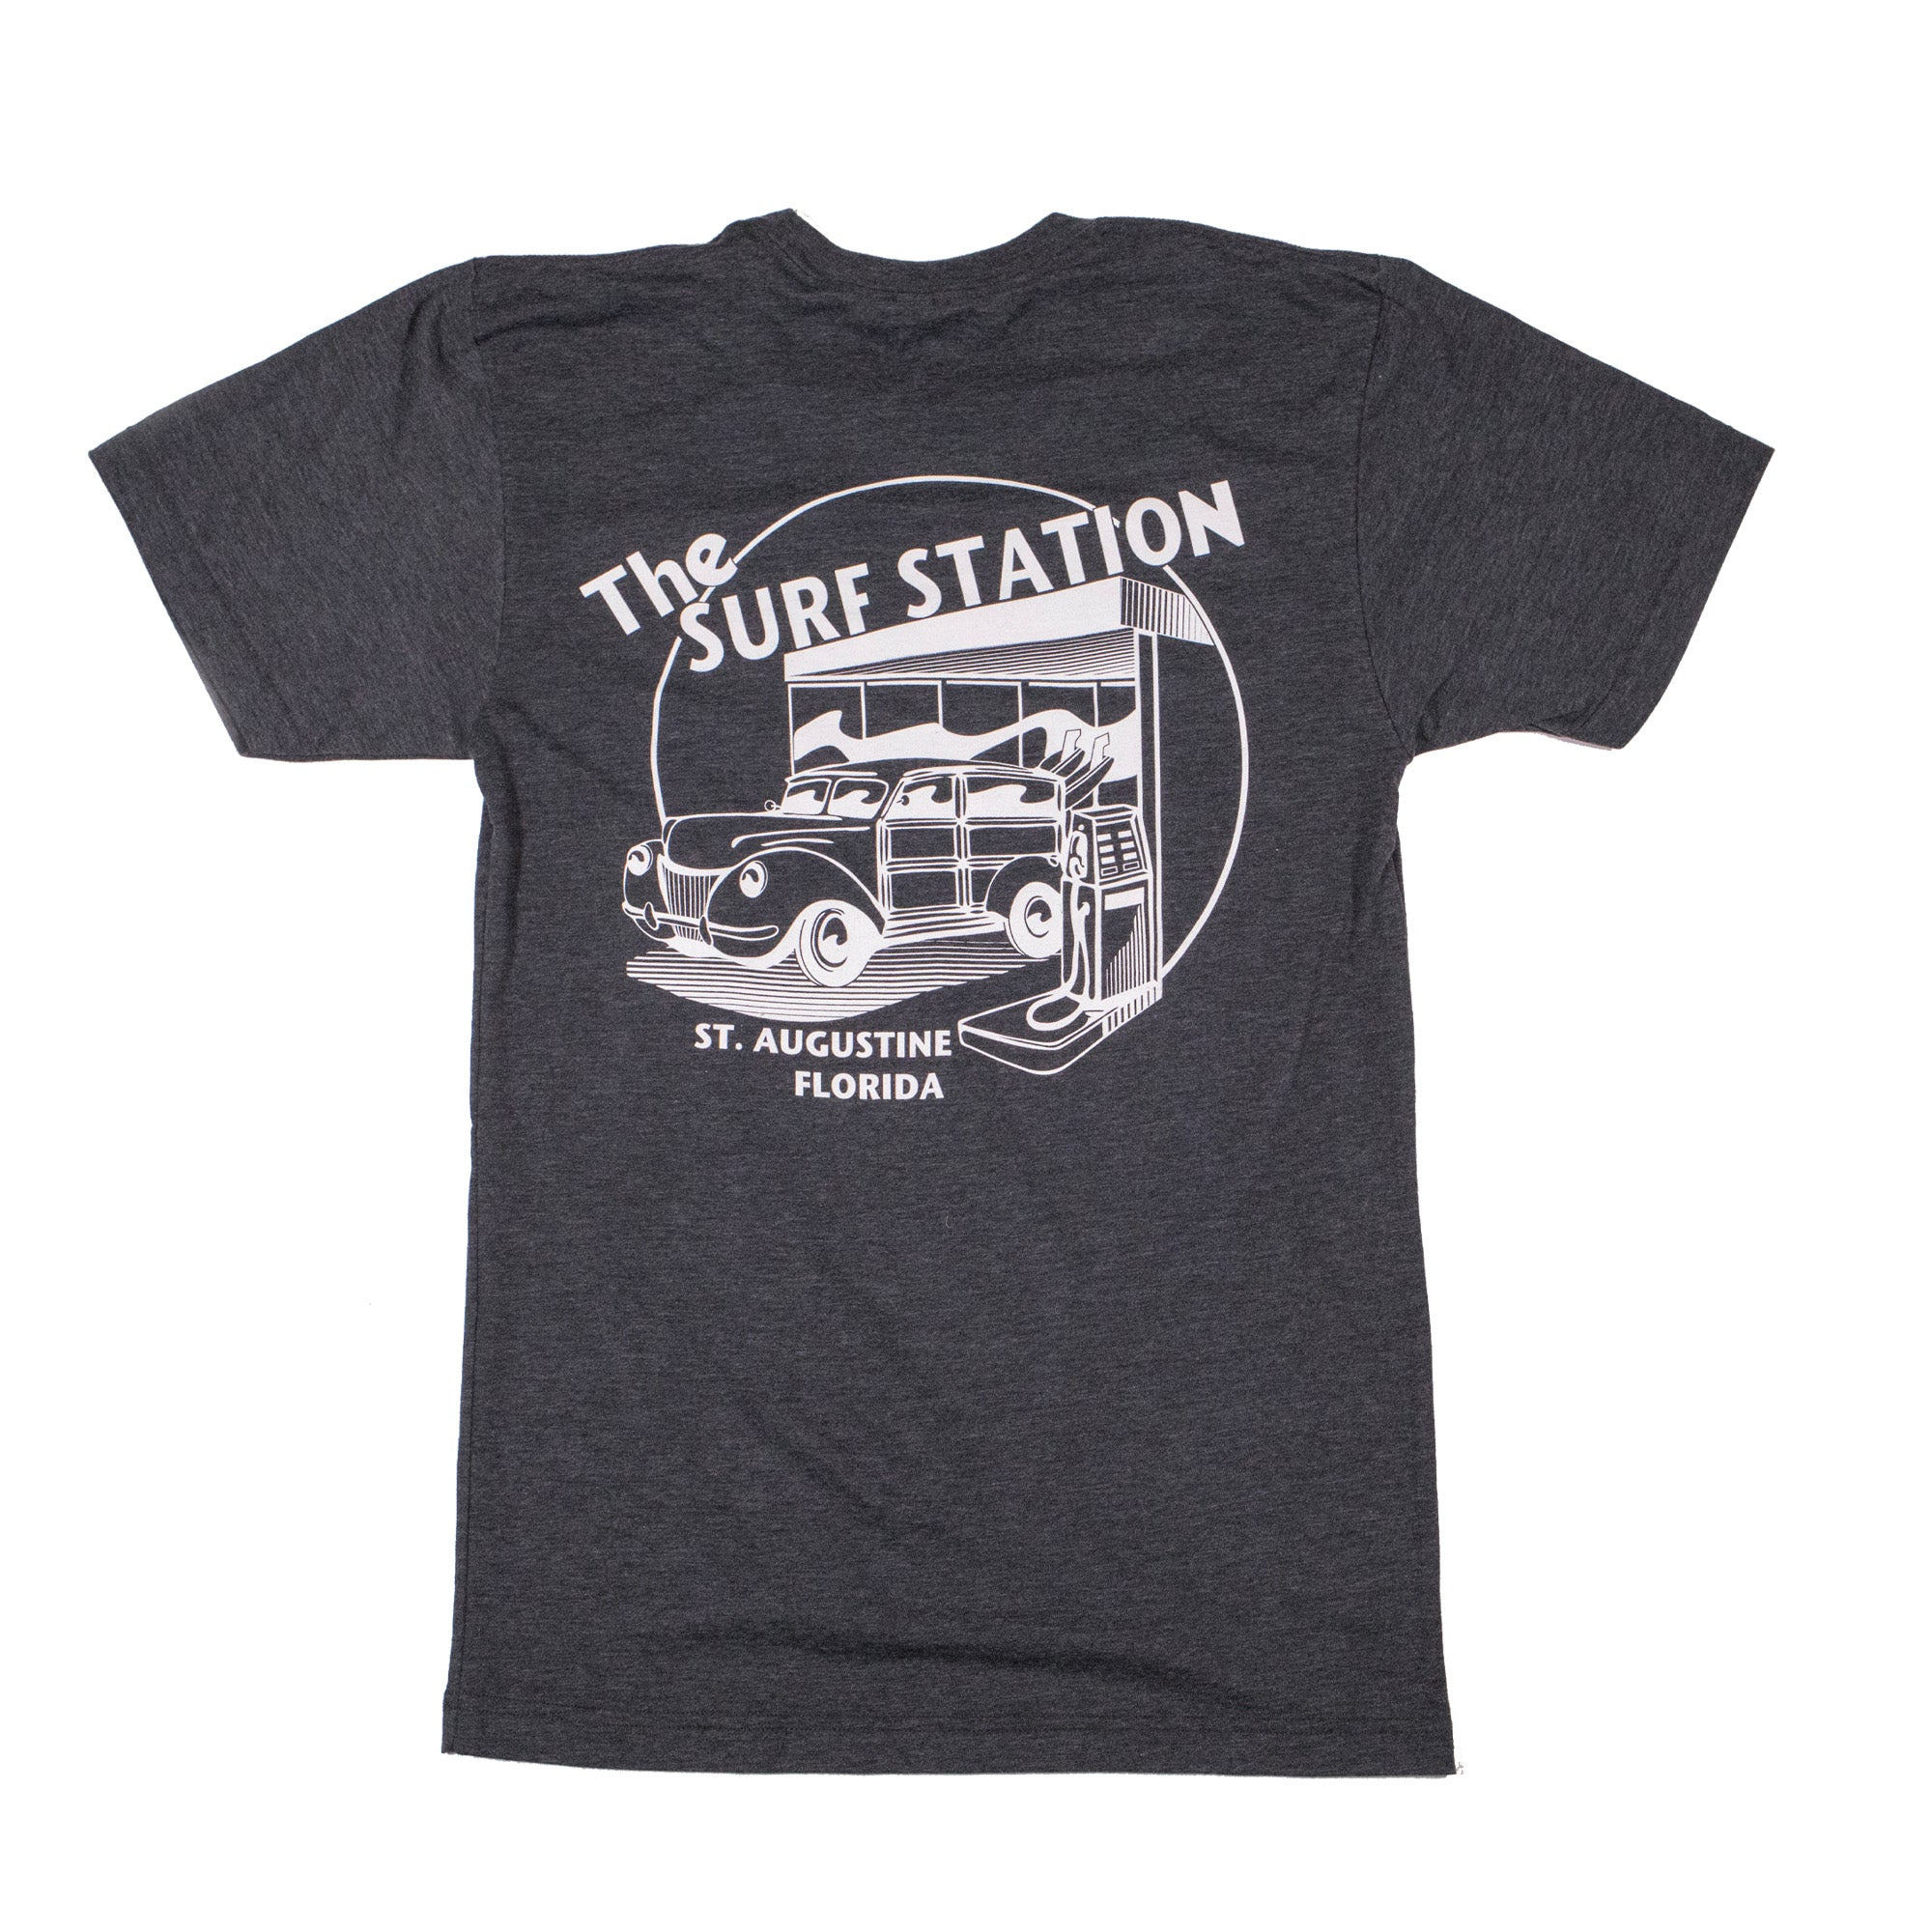 Surf Station Premium Circle Woody Men's S/S T-Shirt